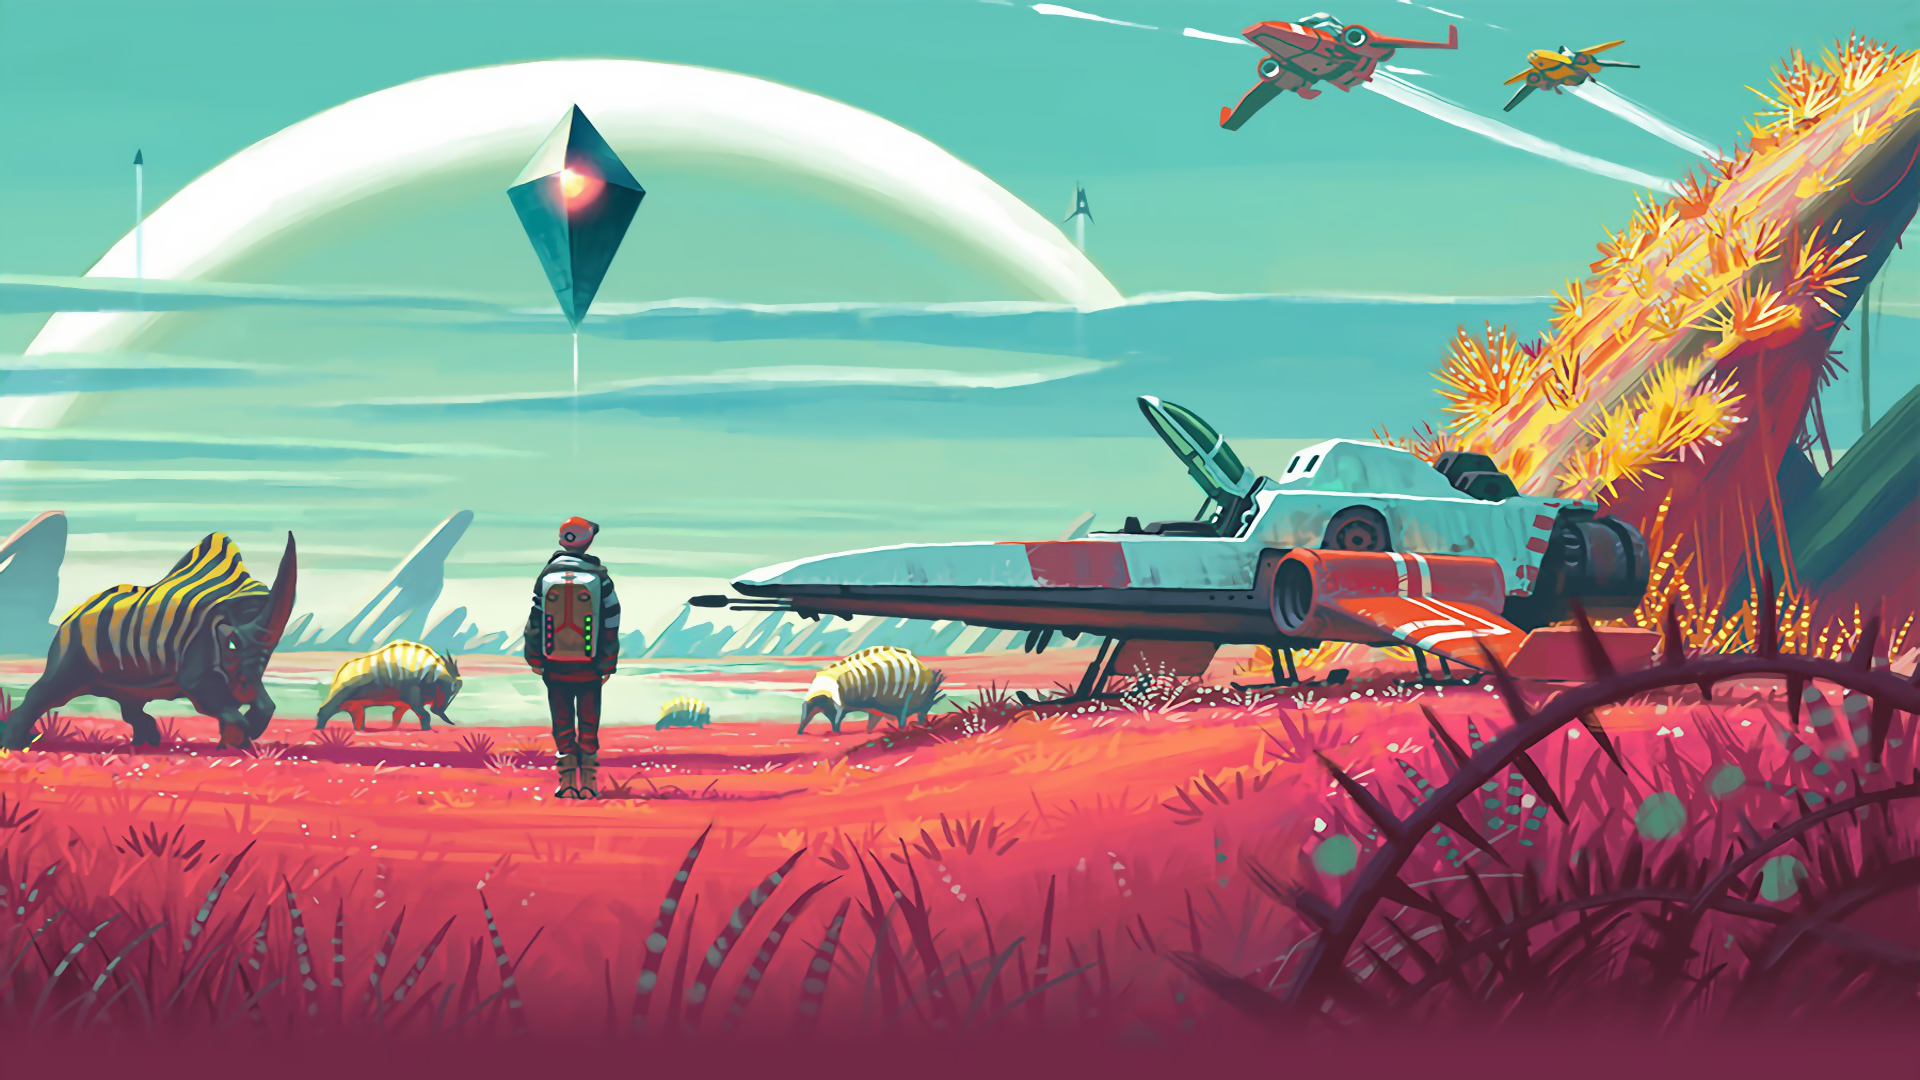 La bande originale de No Man's Sky sera bientôt disponible